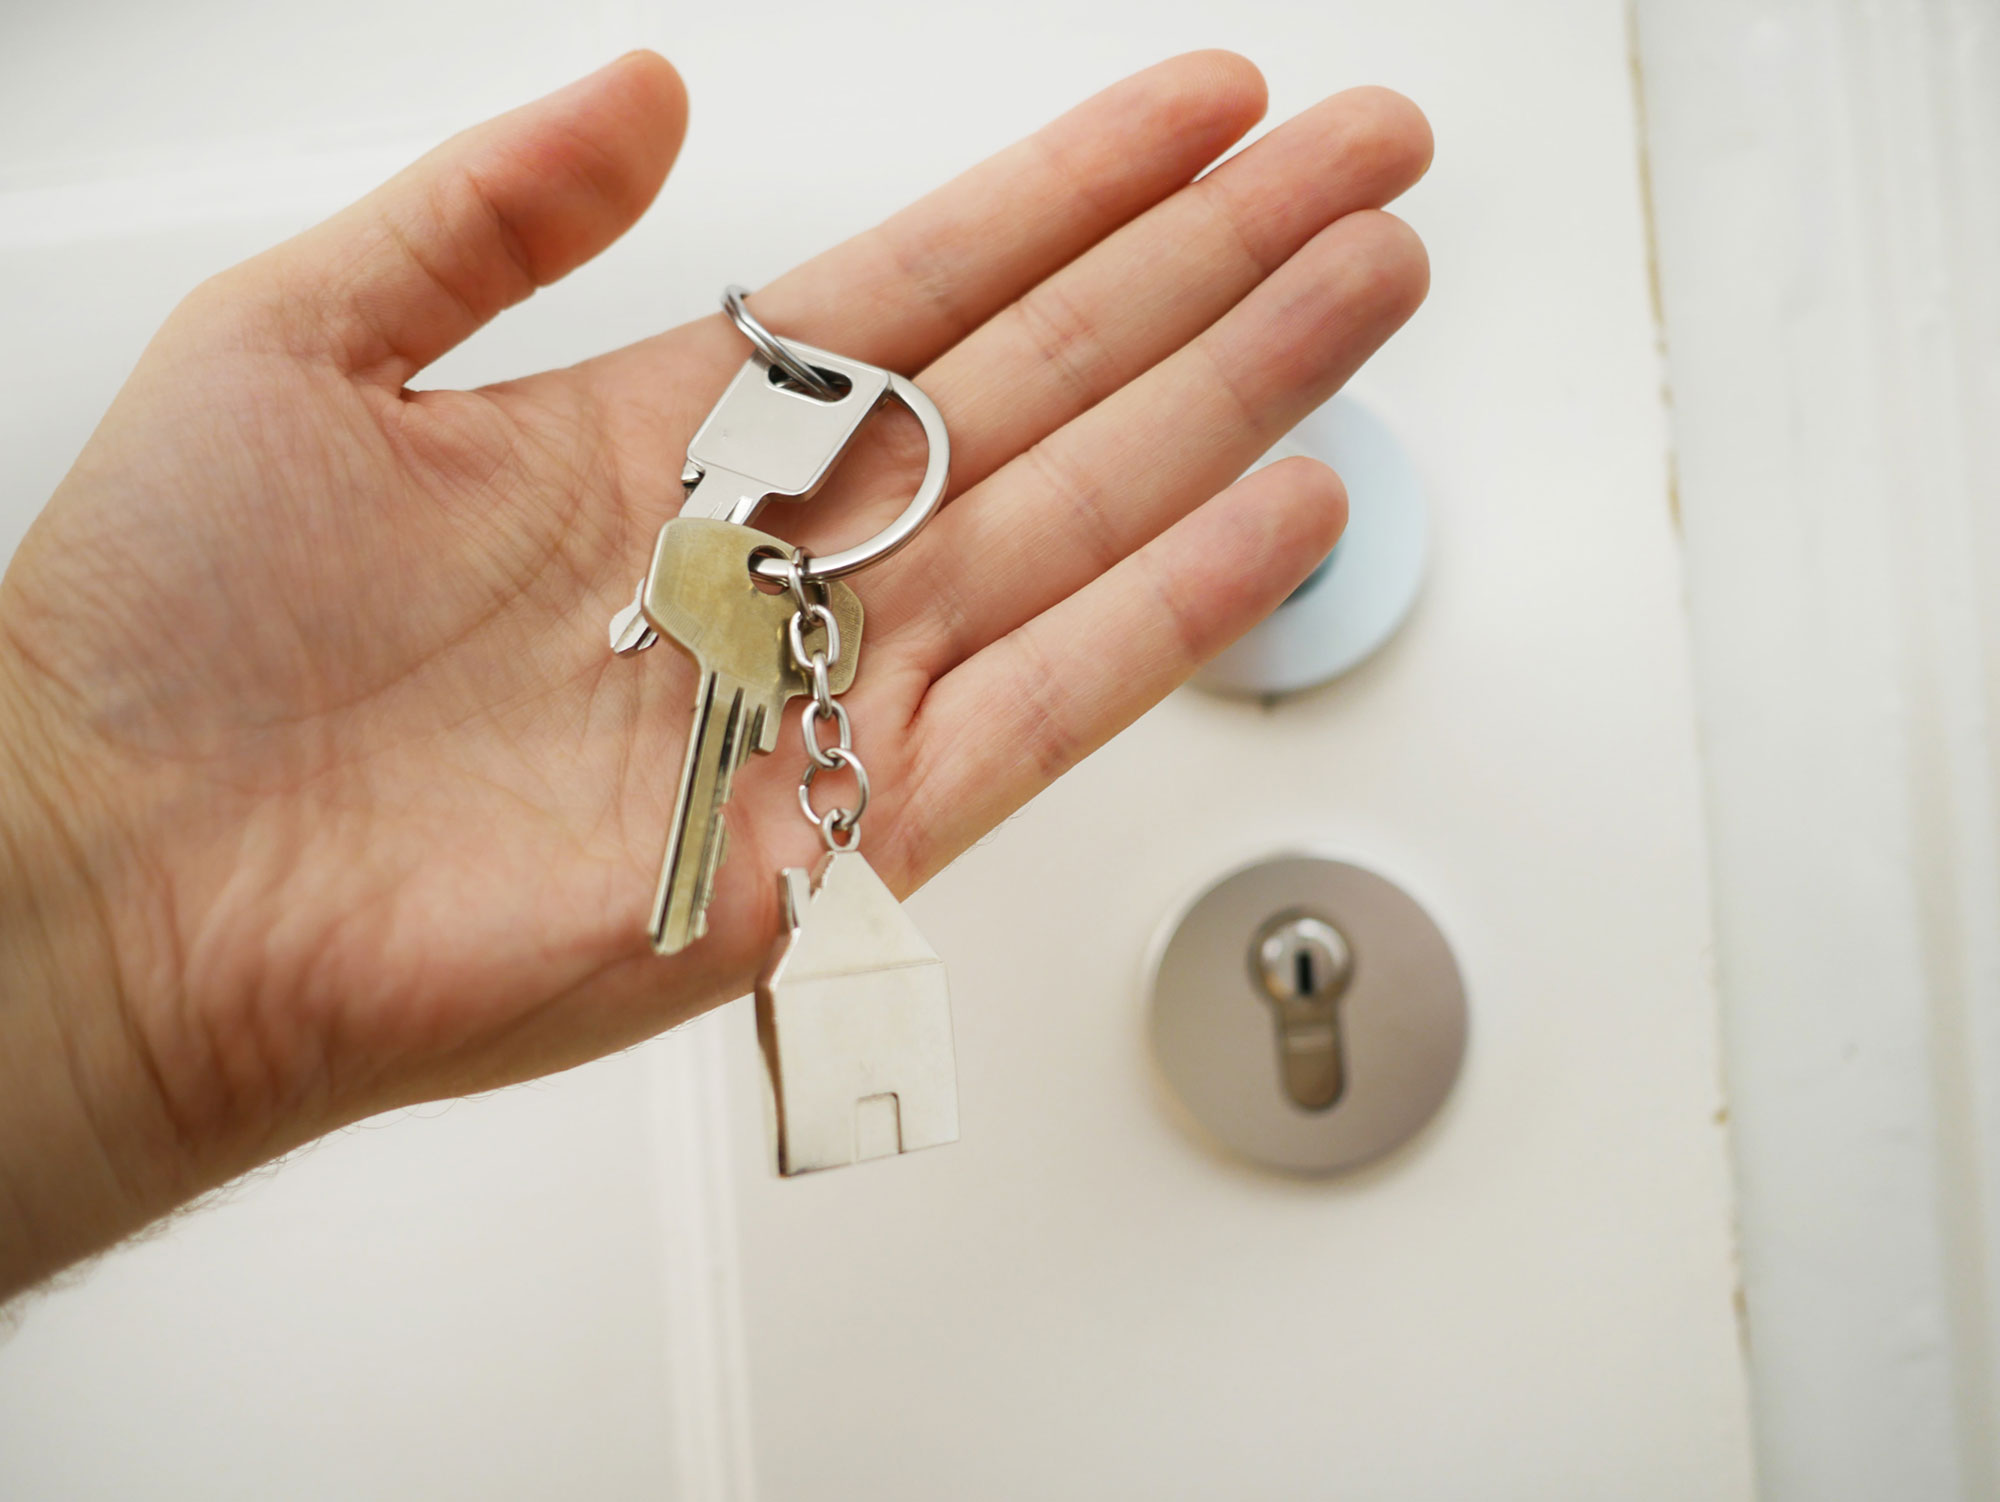 Voucher mobility and pathways to homeownership